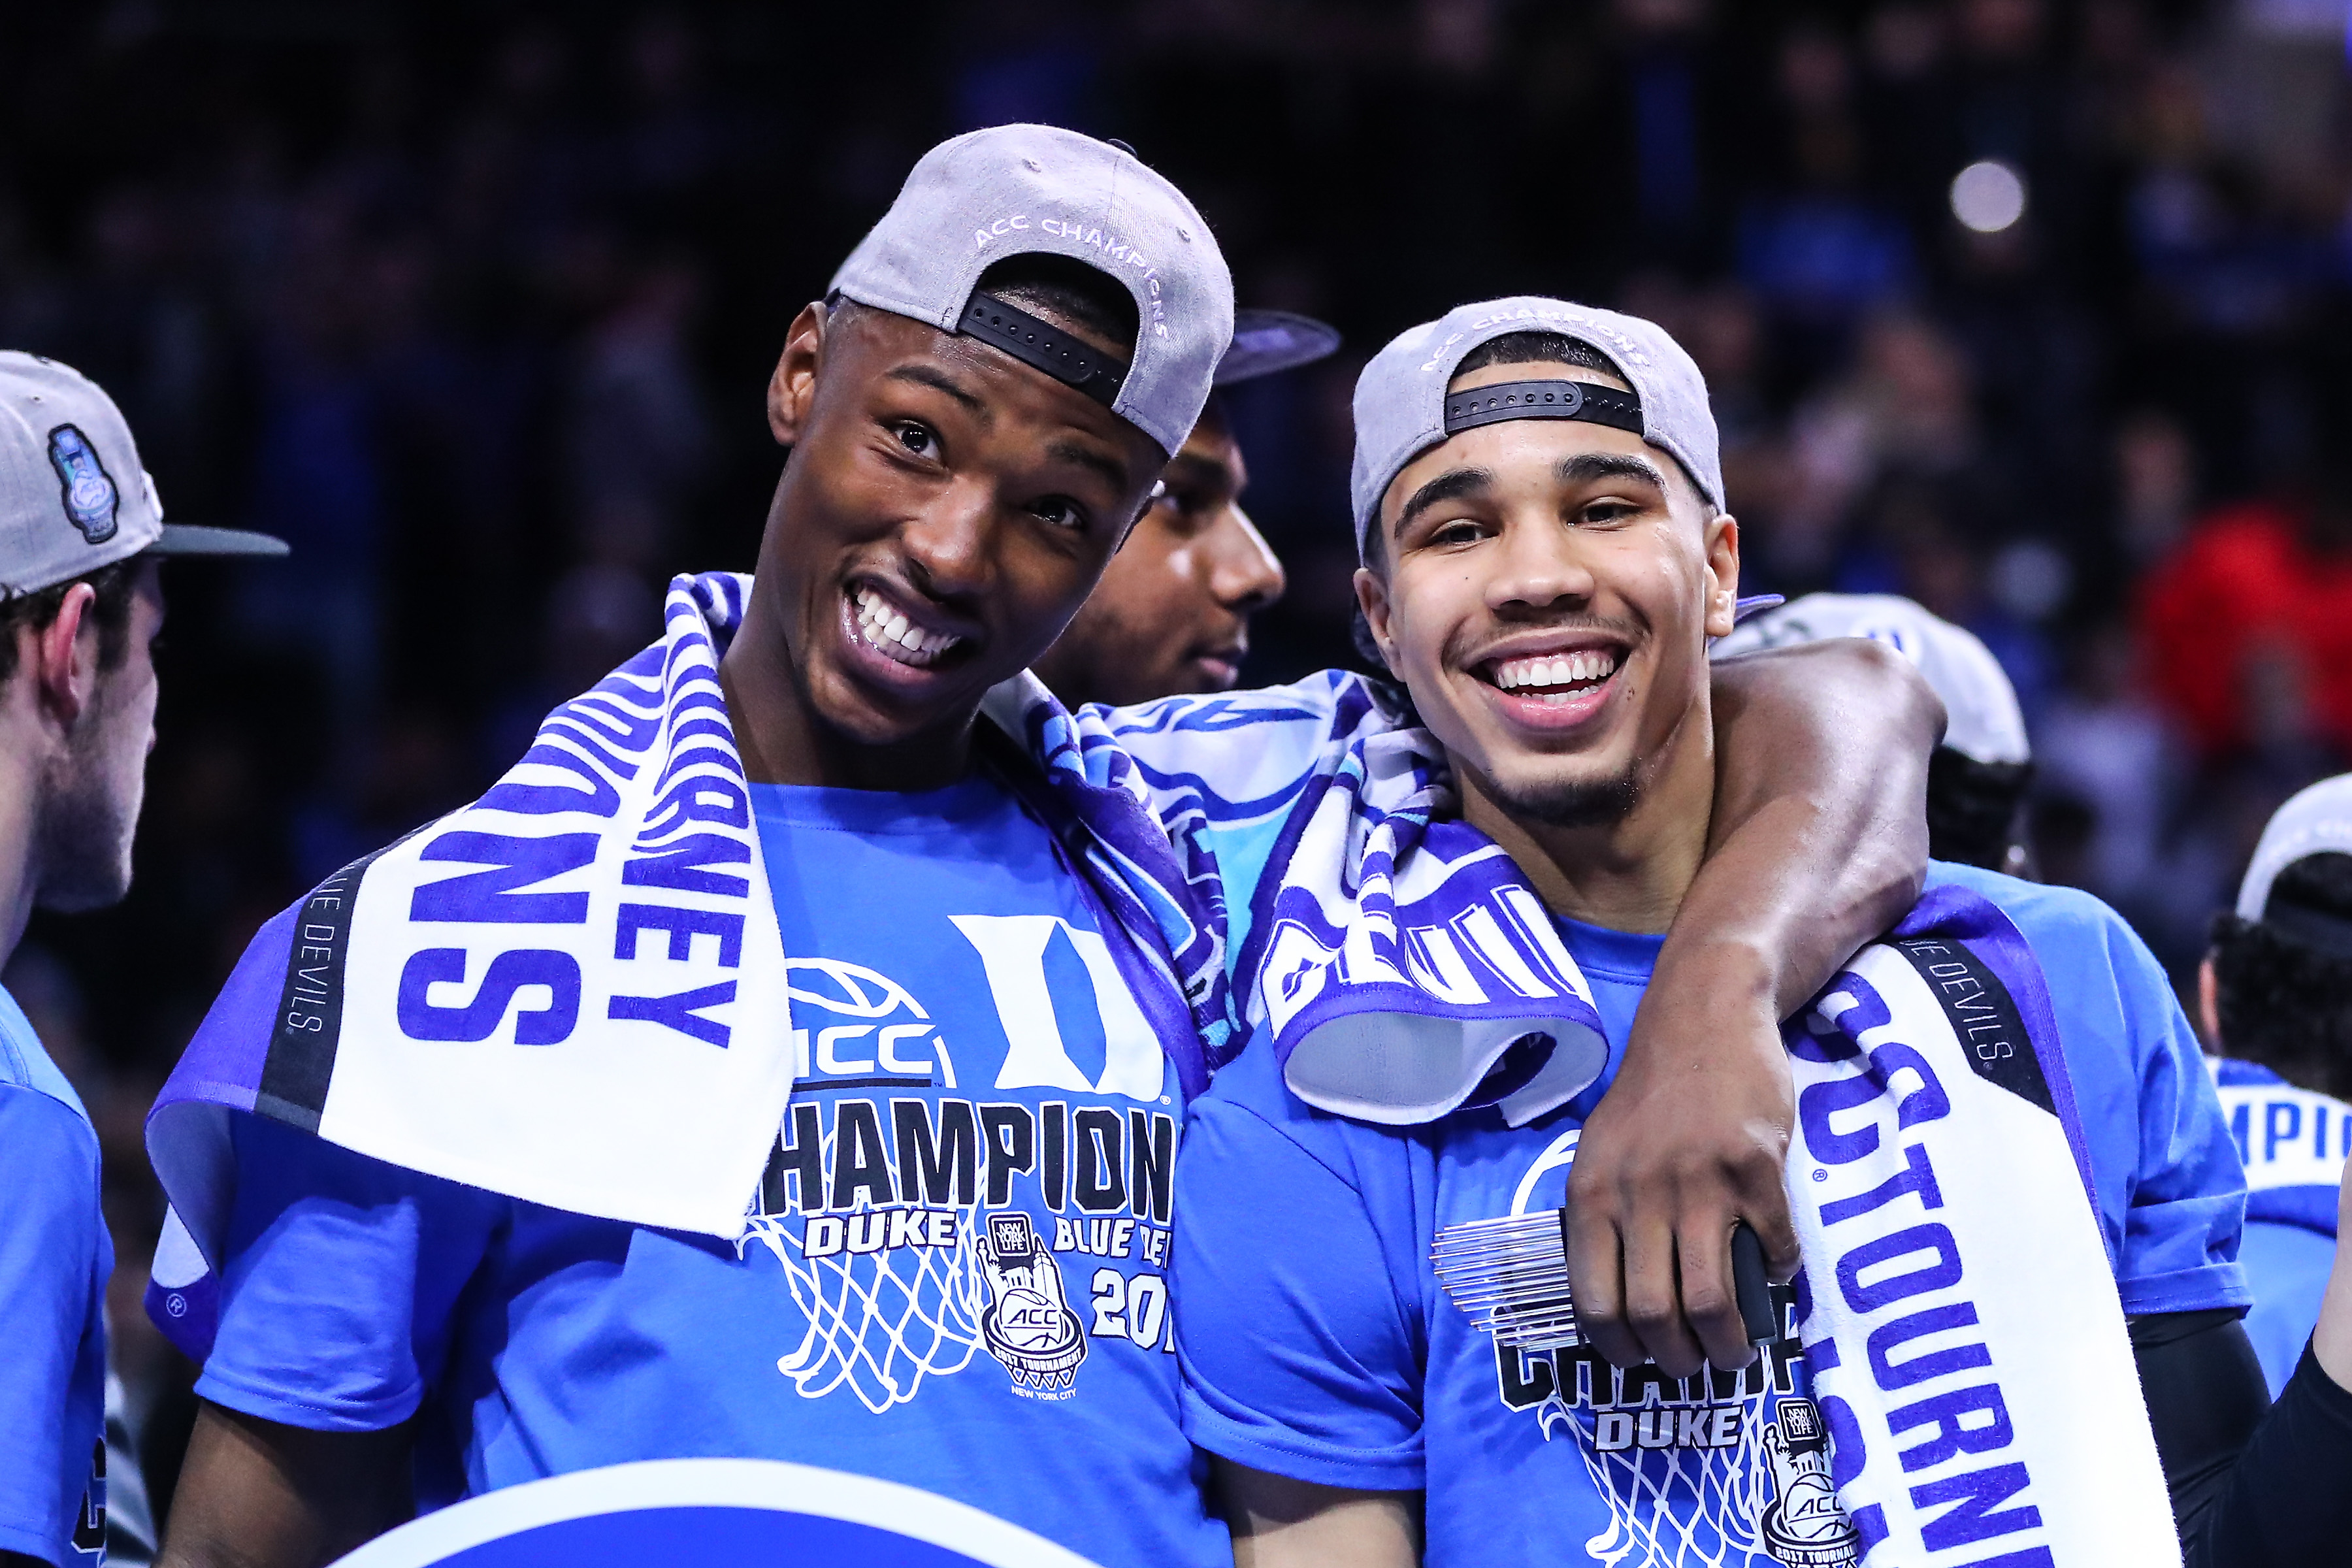 Duke Blue Devils' Harry Giles and Jayson Tatum smile after winning the 2017 NCAA championship